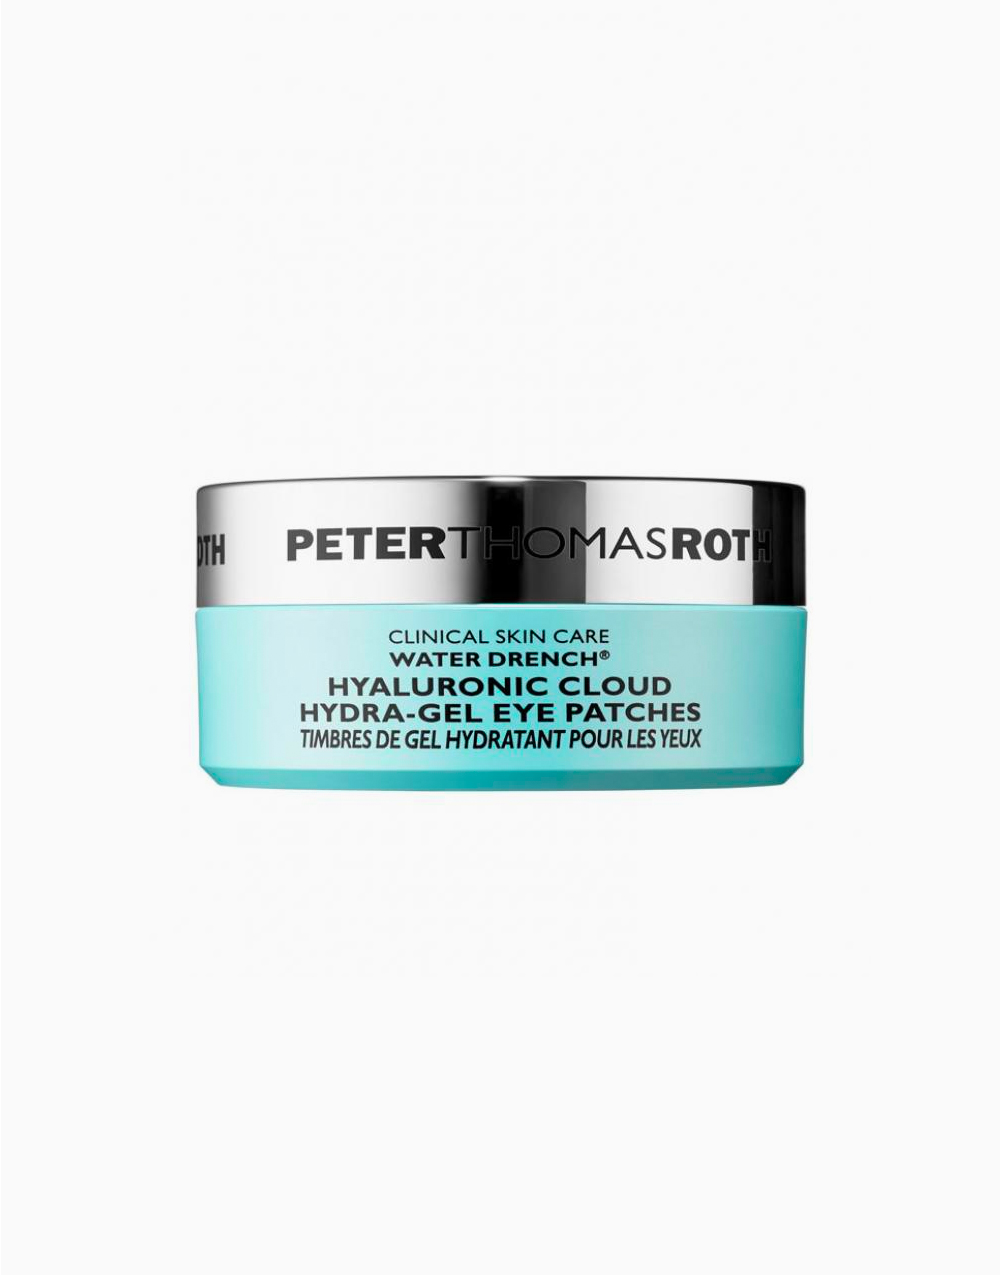 Water Drench Hyaluronic Cloud Hydra-Gel Eye Patches by Peter Thomas Roth